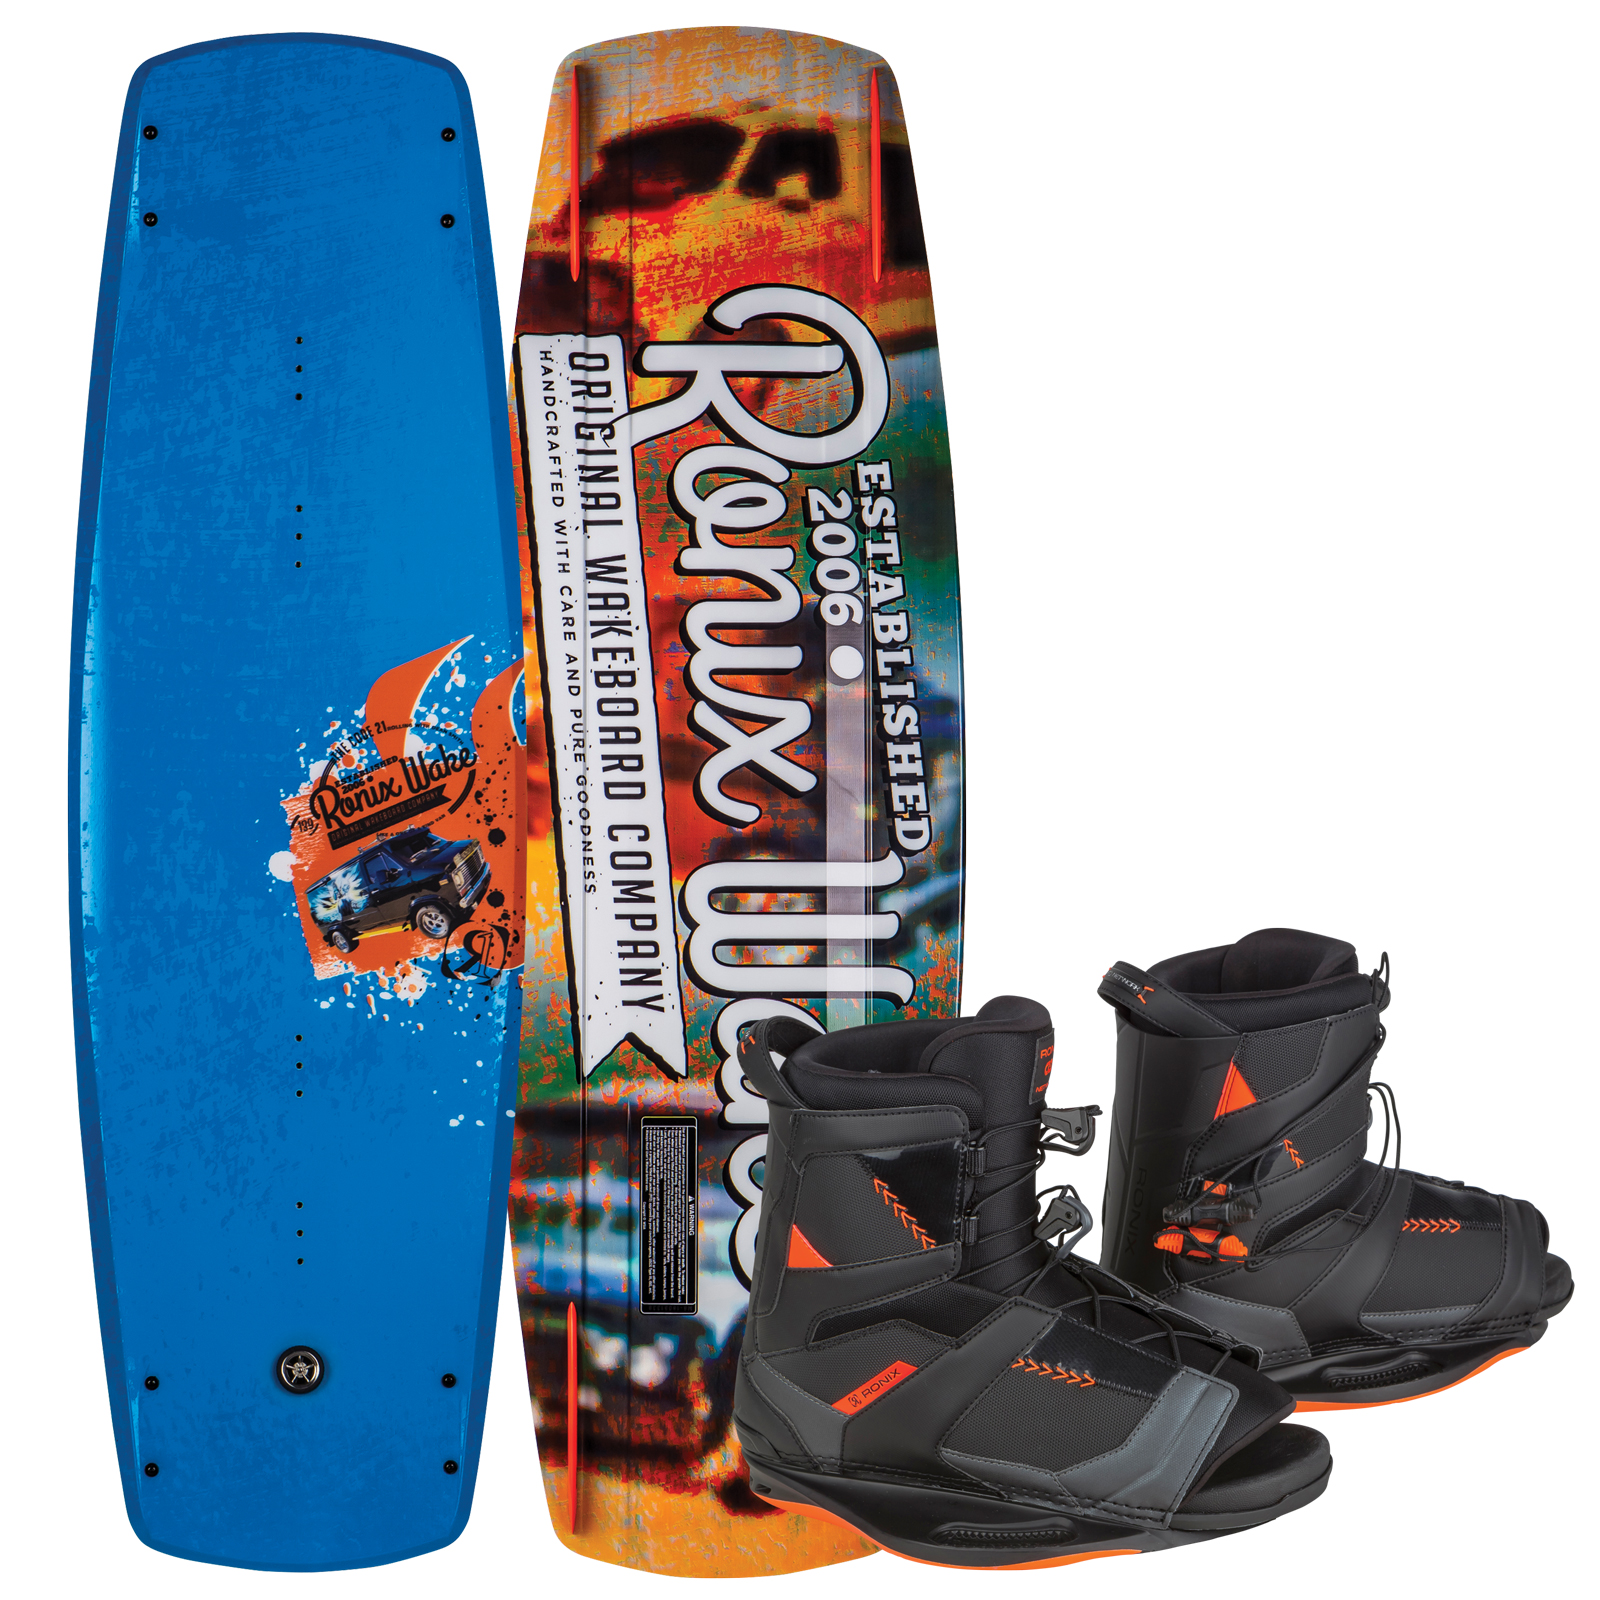 CODE 21 139 W/ NETWORK PACKAGE RONIX 2017